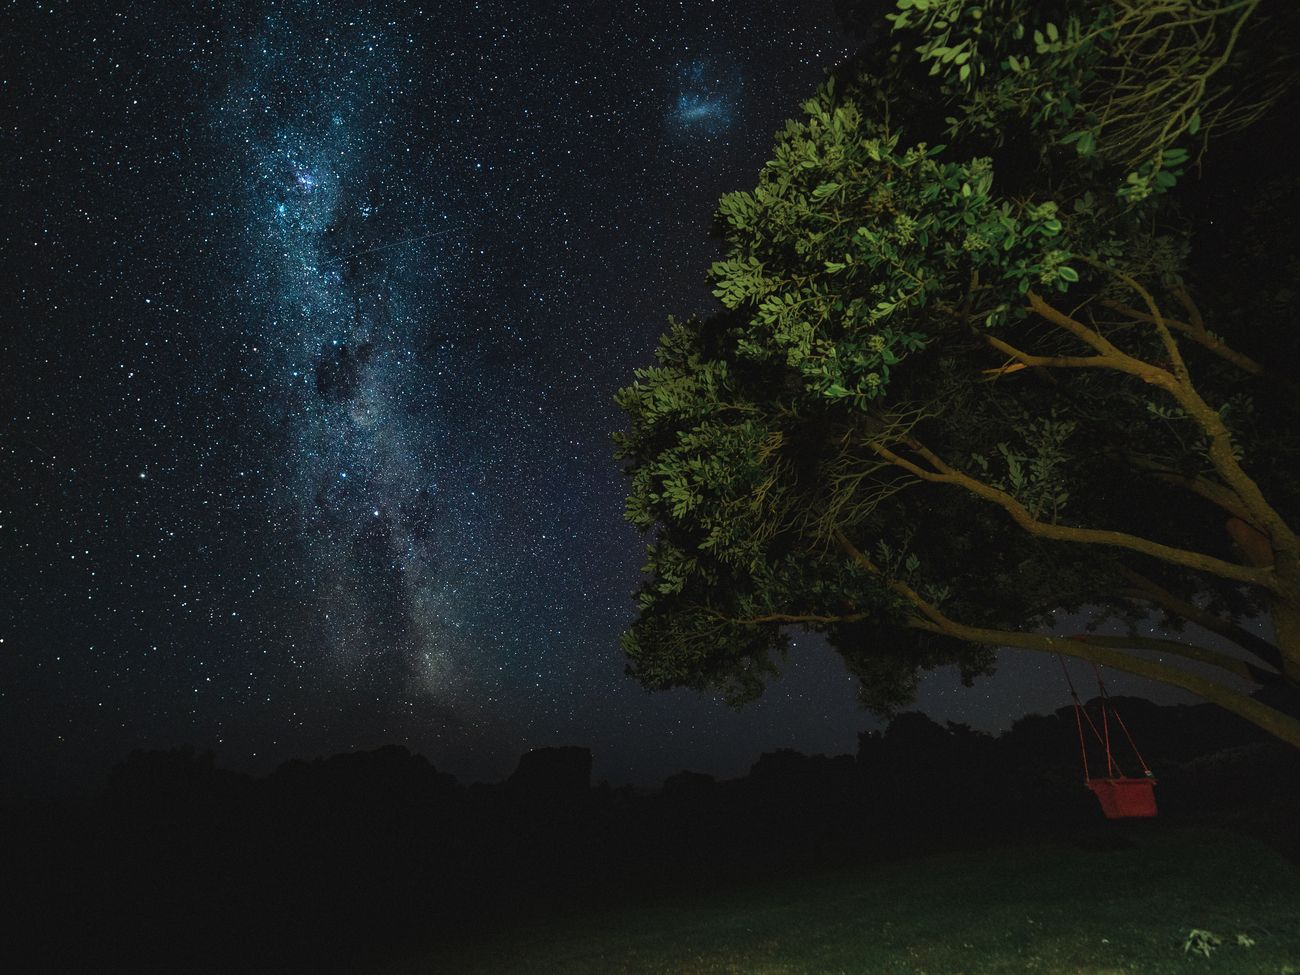 Having the milky way in your garden is best of luxury isn't it !